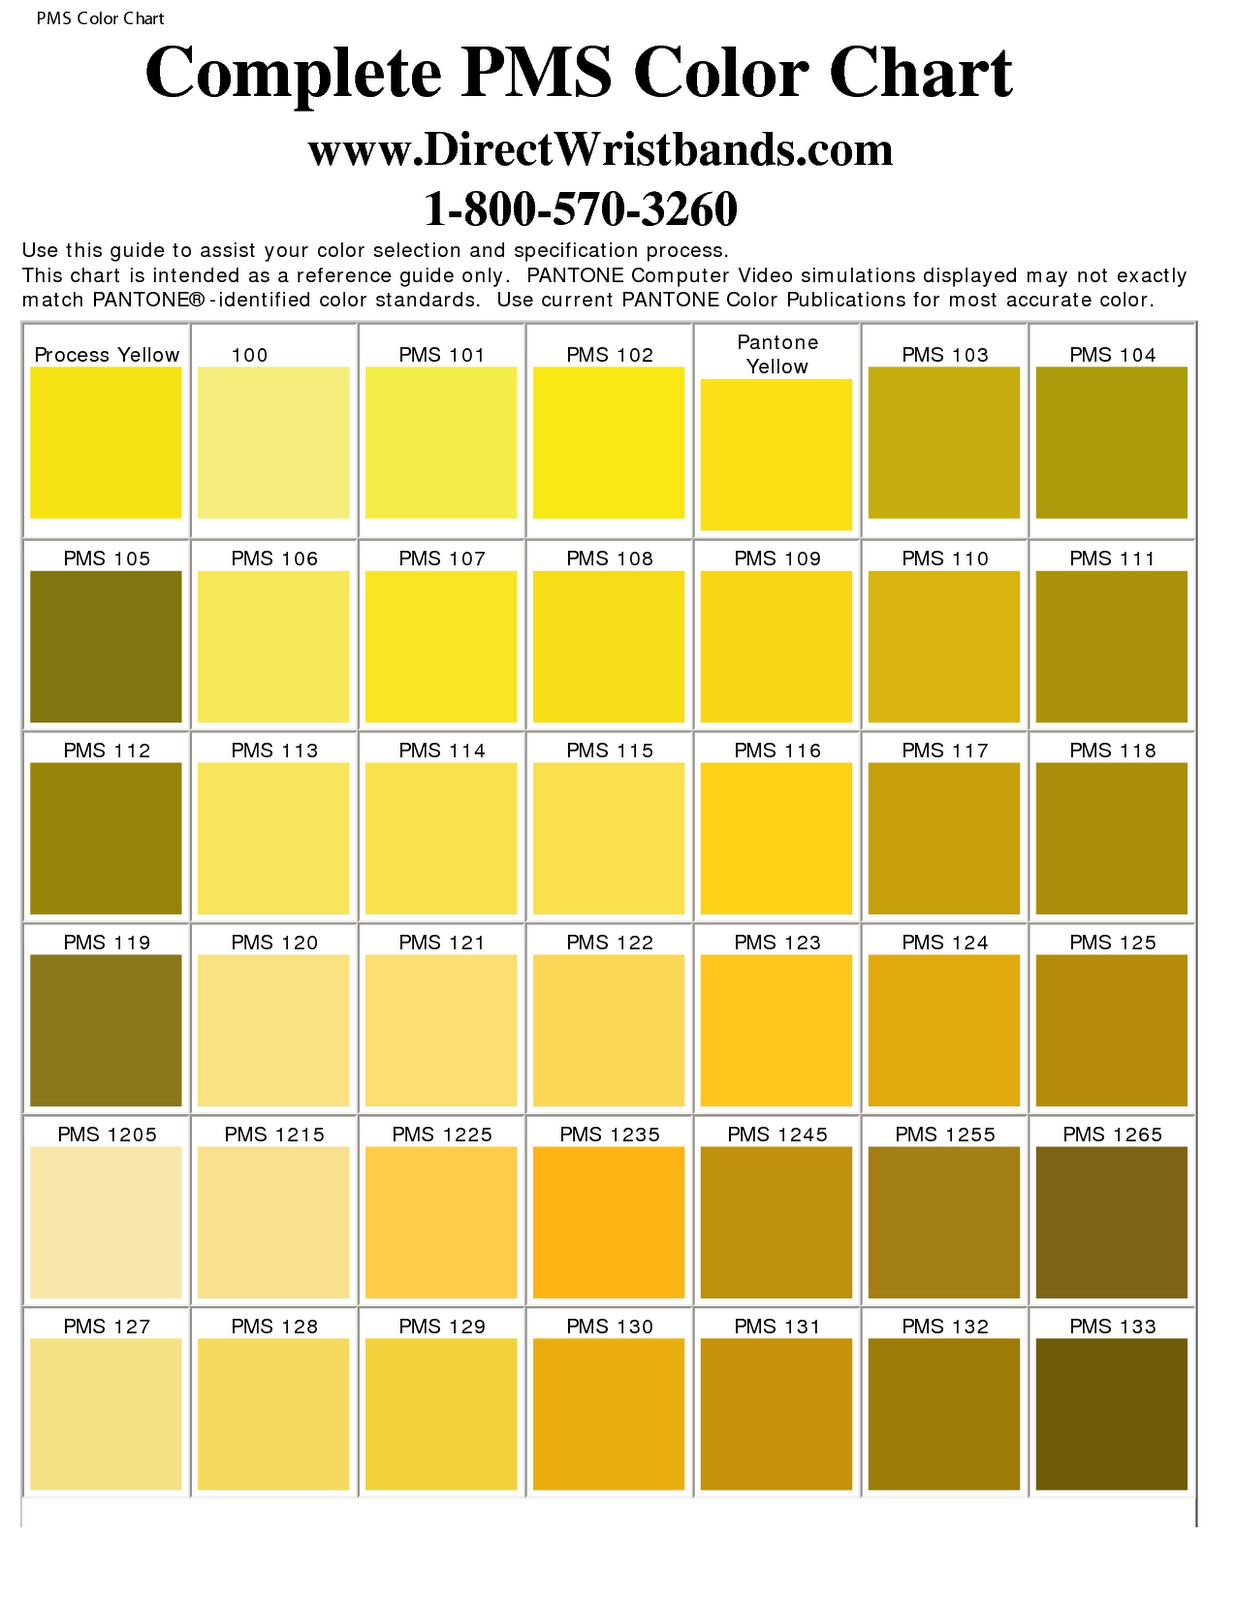 Poop color chart yellow pale stools defenderauto info ayucar hd image of poop color chart yellow poop urine chart dr poane s chiropractic nvjuhfo Image collections